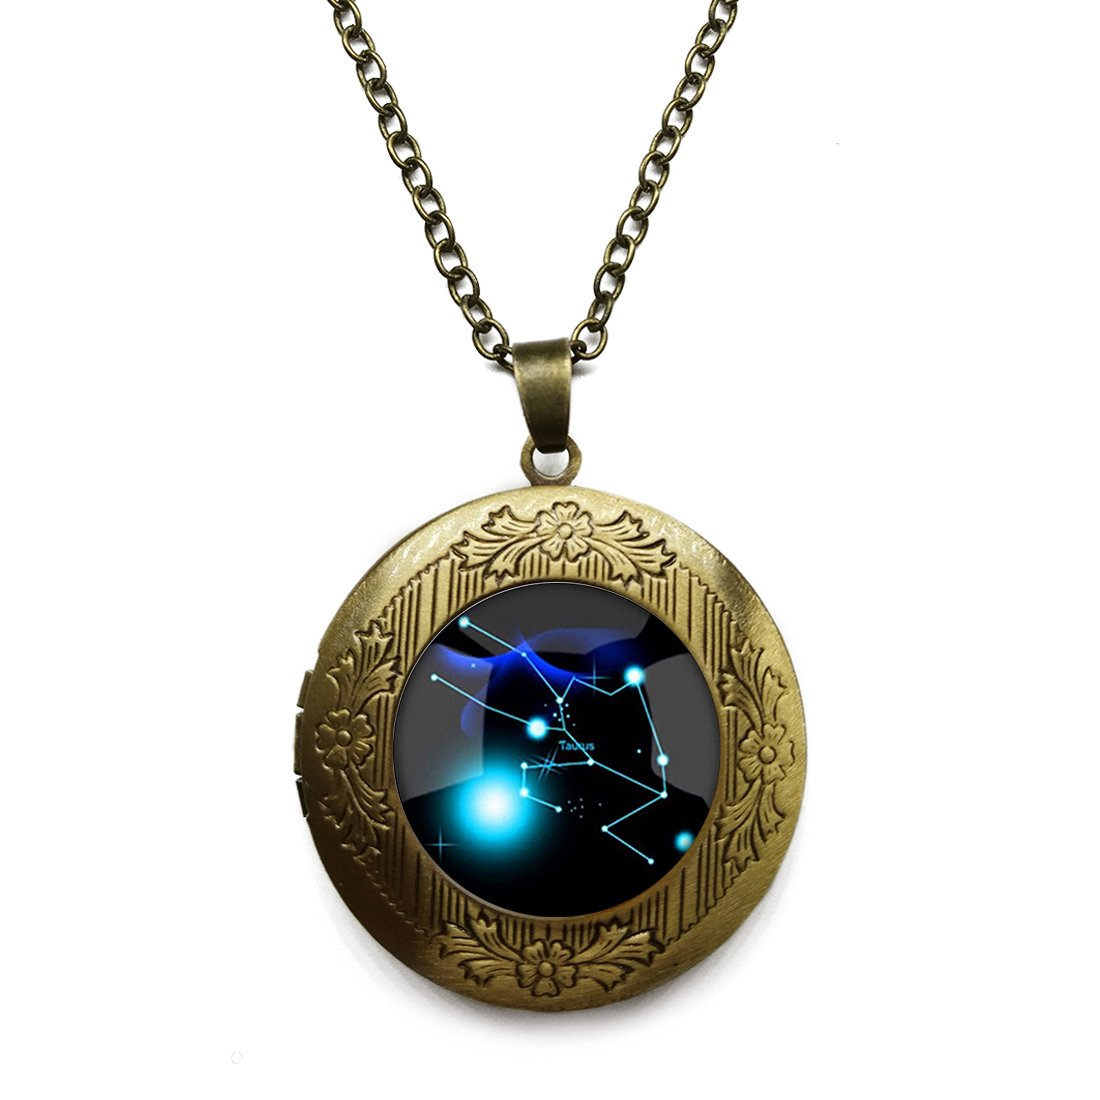 Vintage Bronze Tone Locket Picture Pendant Necklace 12 Constellation Included Free Brass Chain Gifts Personalized